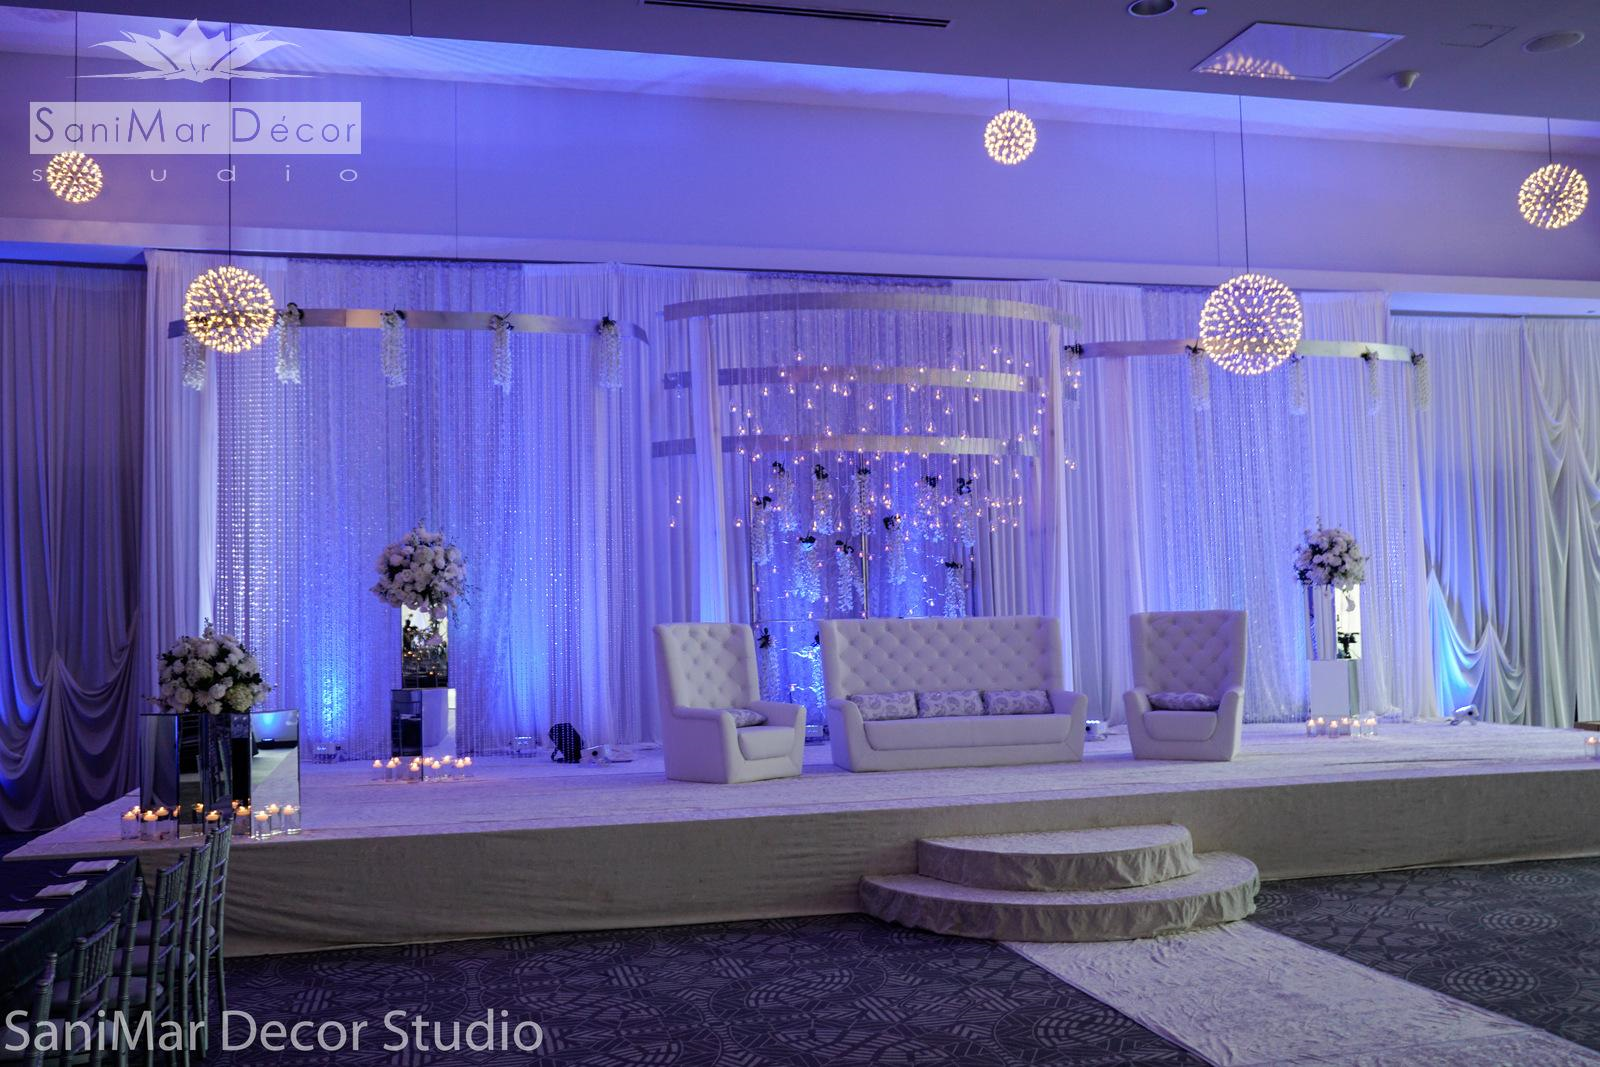 Pin by Purple Decorations on All White Party in 2019 ... Ideas Ceremony Lighting Receptioncandle on